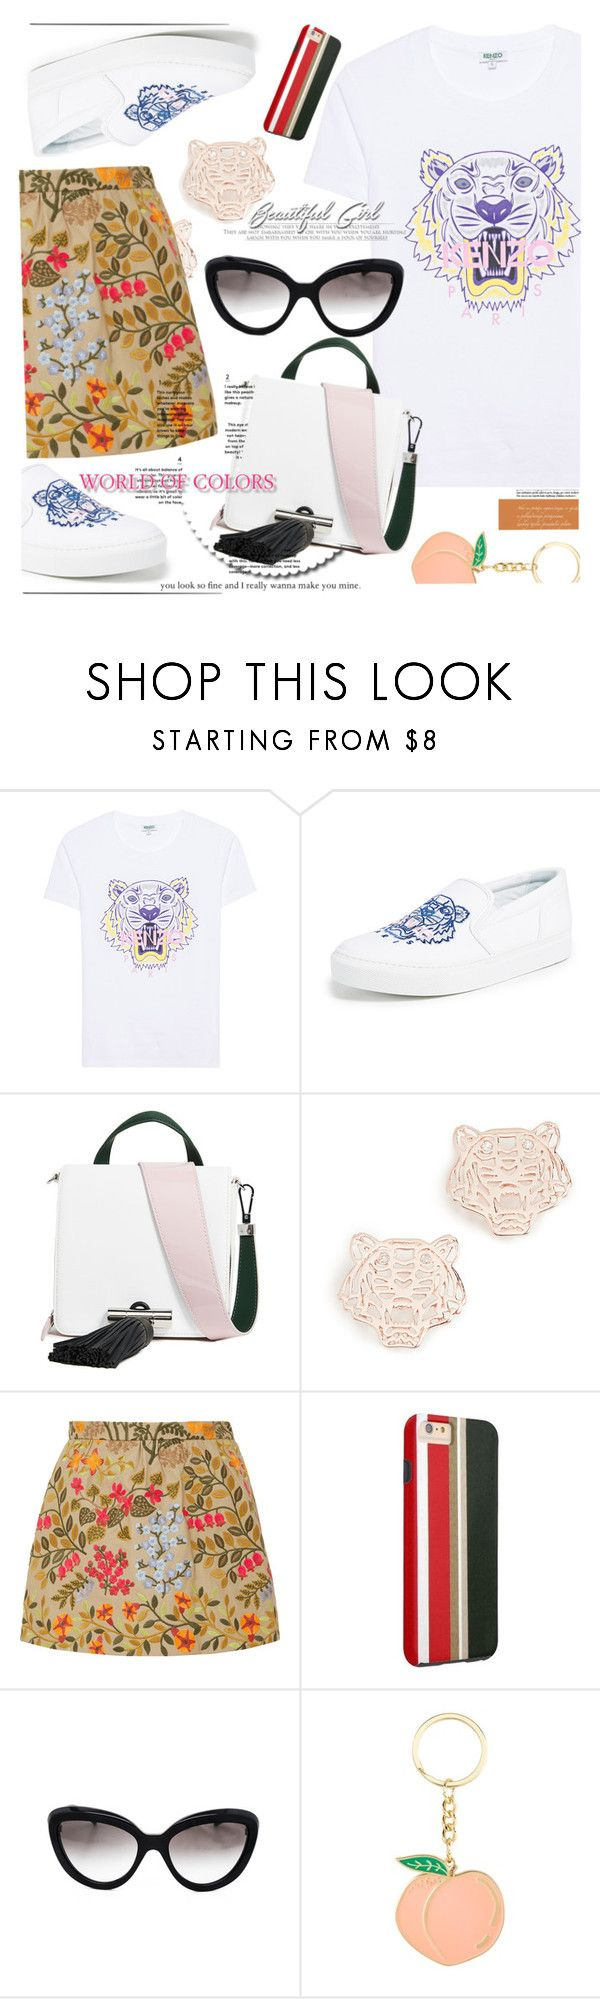 """""""KENZO Classic Tiger White // Printed t-shirt"""" by ilona-828 ❤ liked on Polyvore featuring Kenzo, RED Valentino and Prada"""